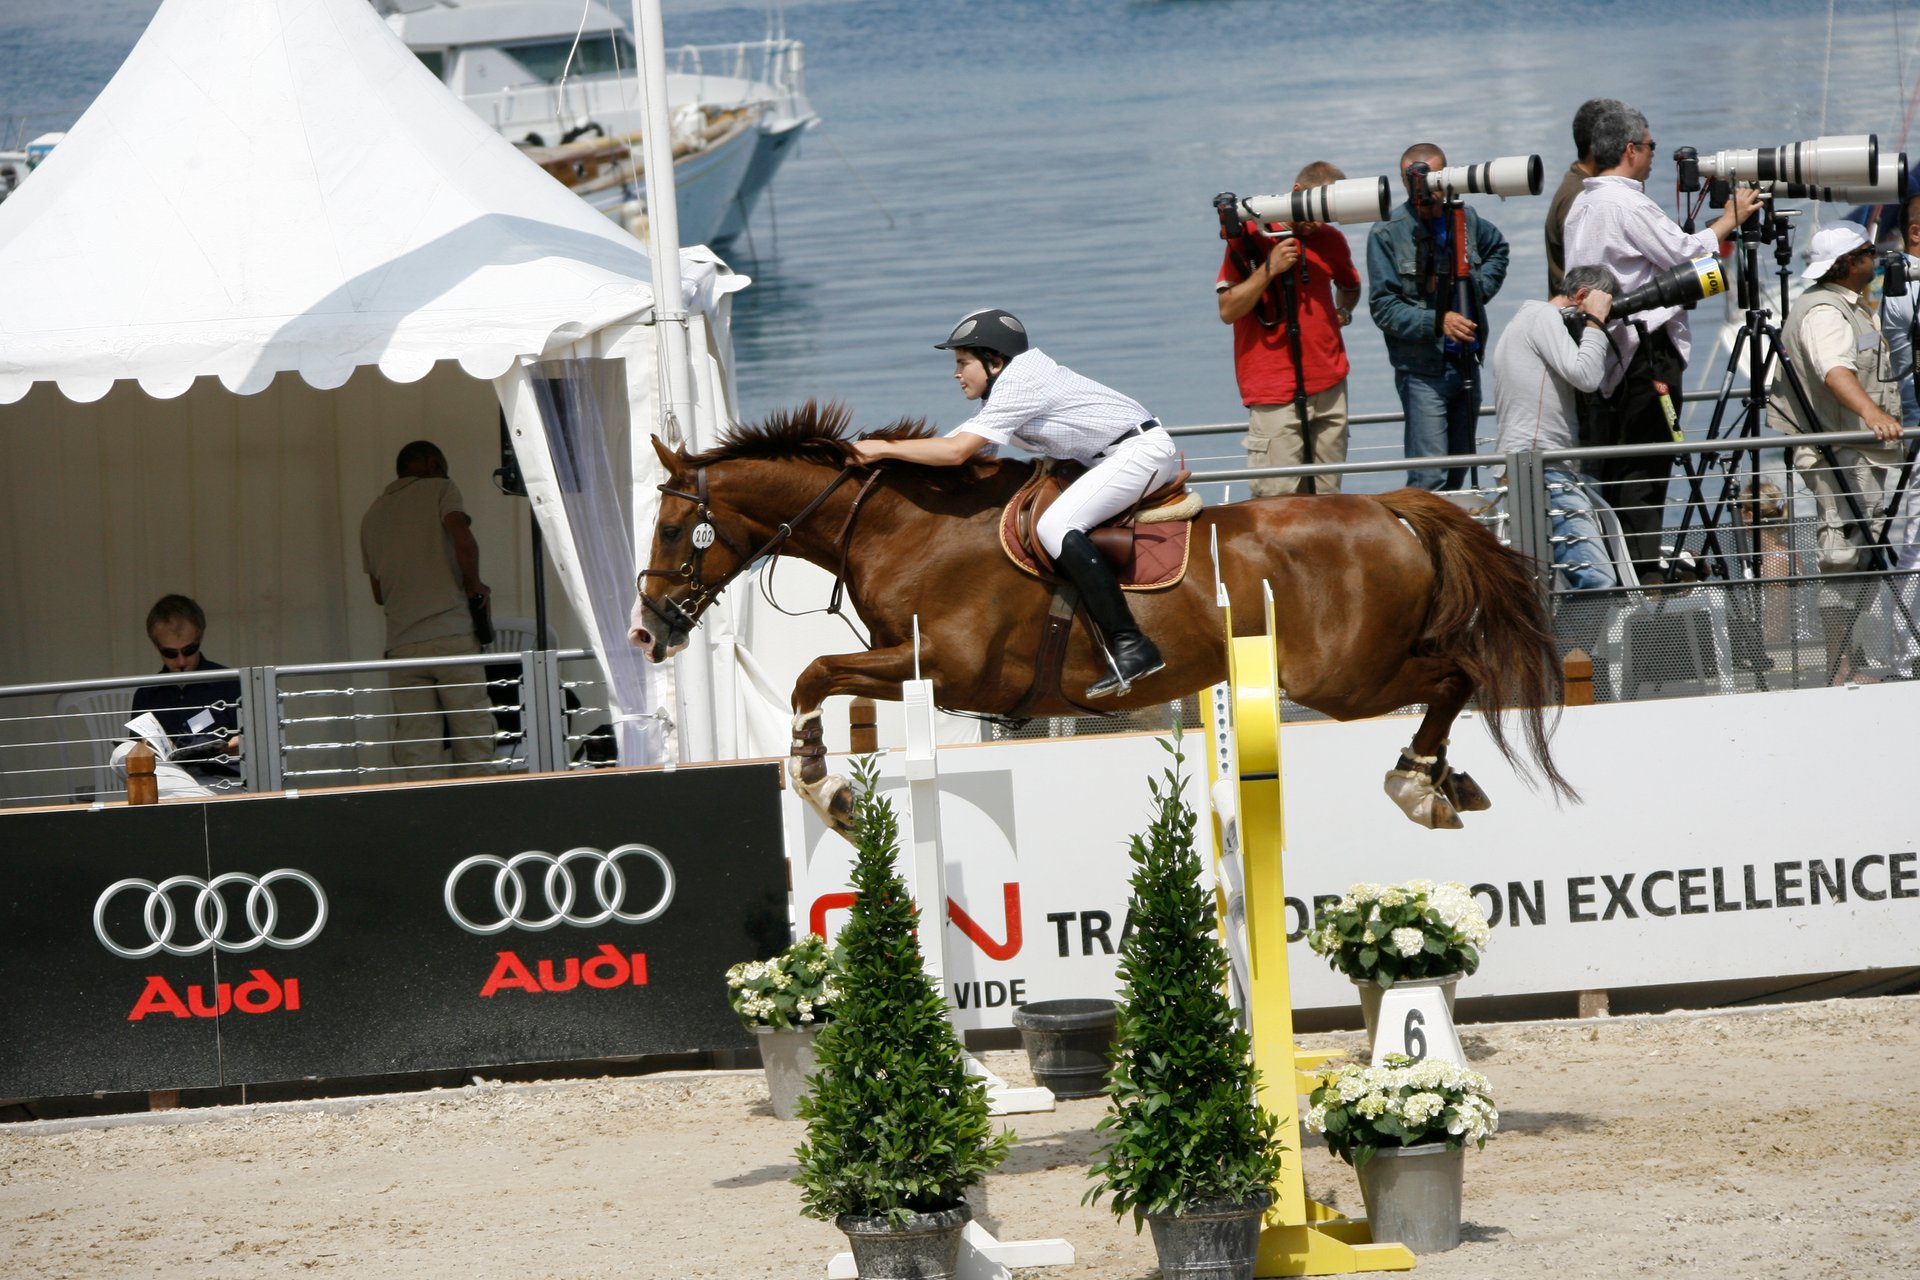 Monte-Carlo International Jumping in Monaco - Best Time